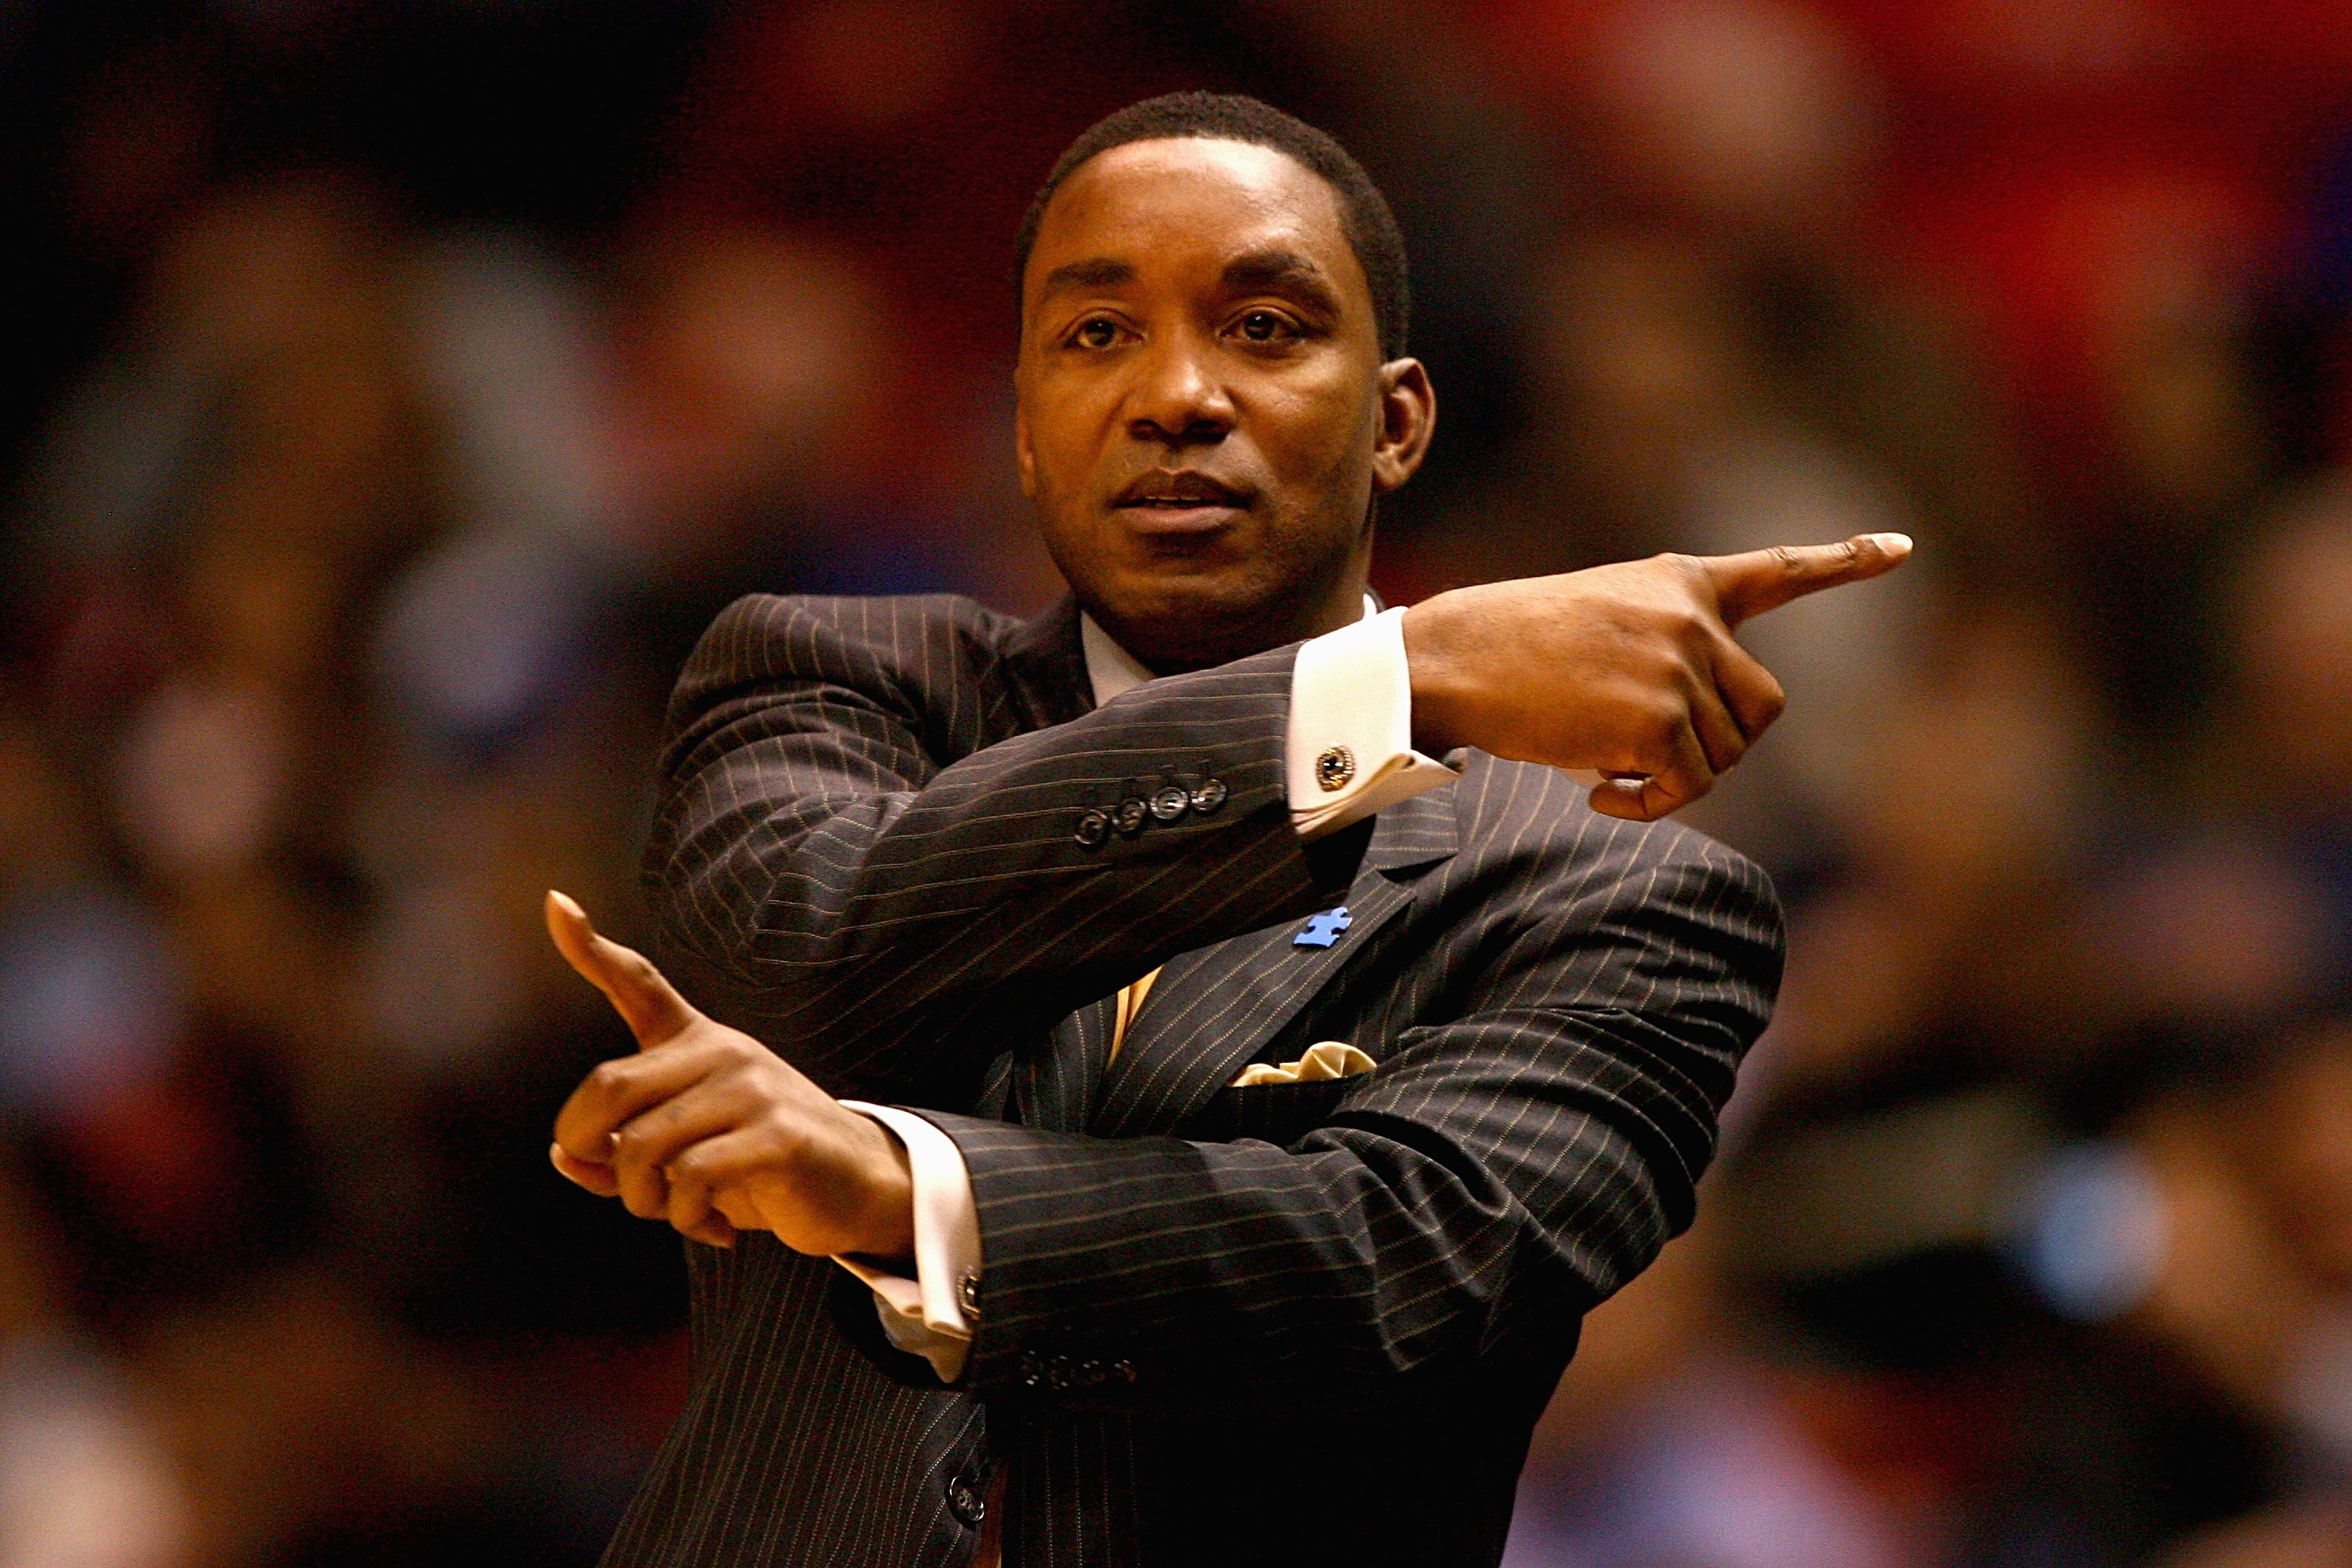 EAST RUTHERFORD, NJ - JANUARY 16:  Head coach Isiah Thomas of the New York Knicks directs play during the game against the New Jersey Nets on January 16, 2008 at the IZOD Center in East Rutherford, New Jersey.  The Knicks won 111-105.  NOTE TO USER: User